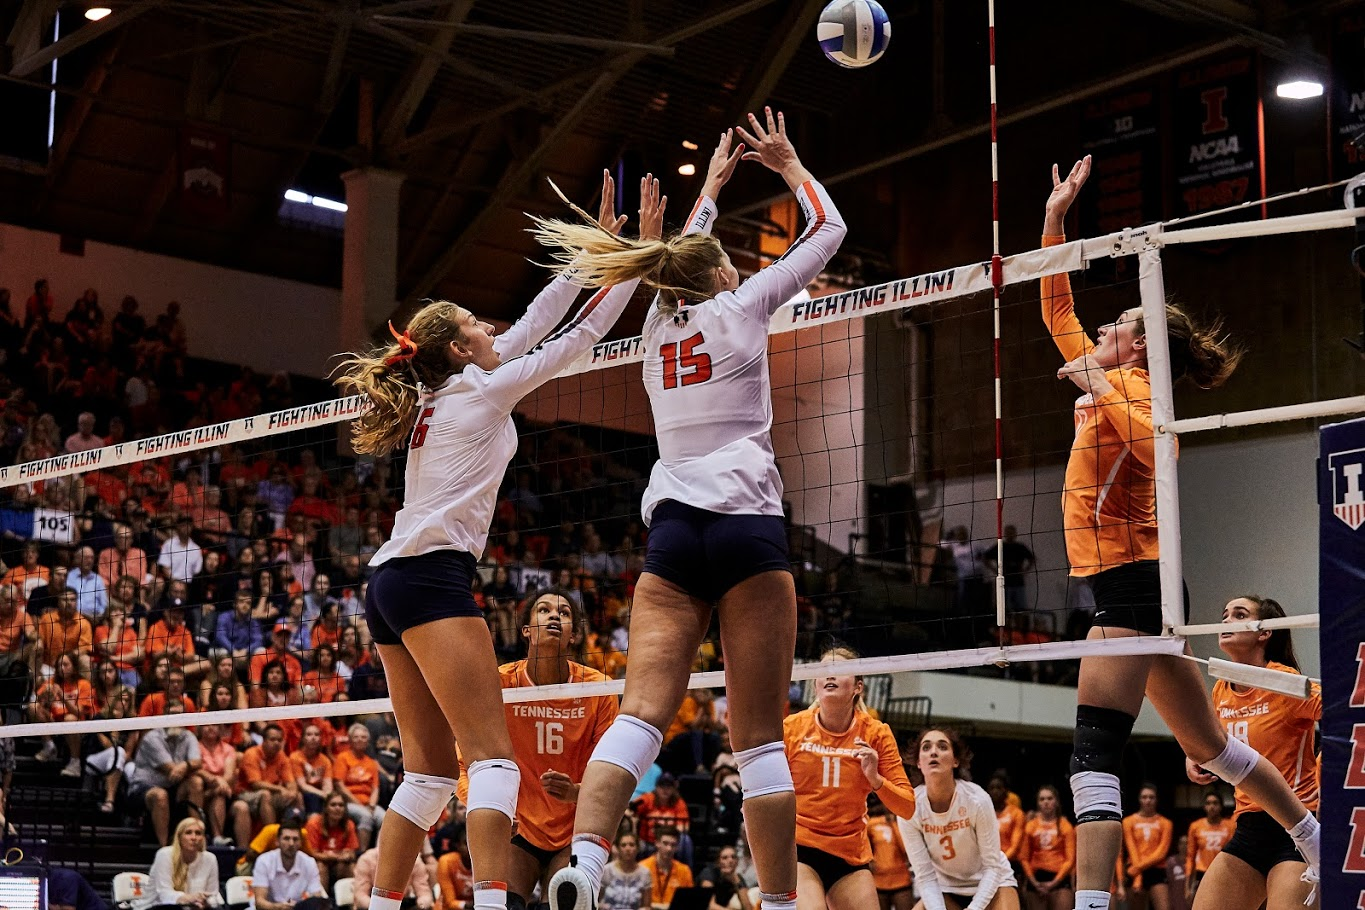 Megan Cooney (15) and Kyla Swanson (6) attempt to block a shot at Huff Hall on Sept. 1. Illinois defeated Tennessee 3-2.